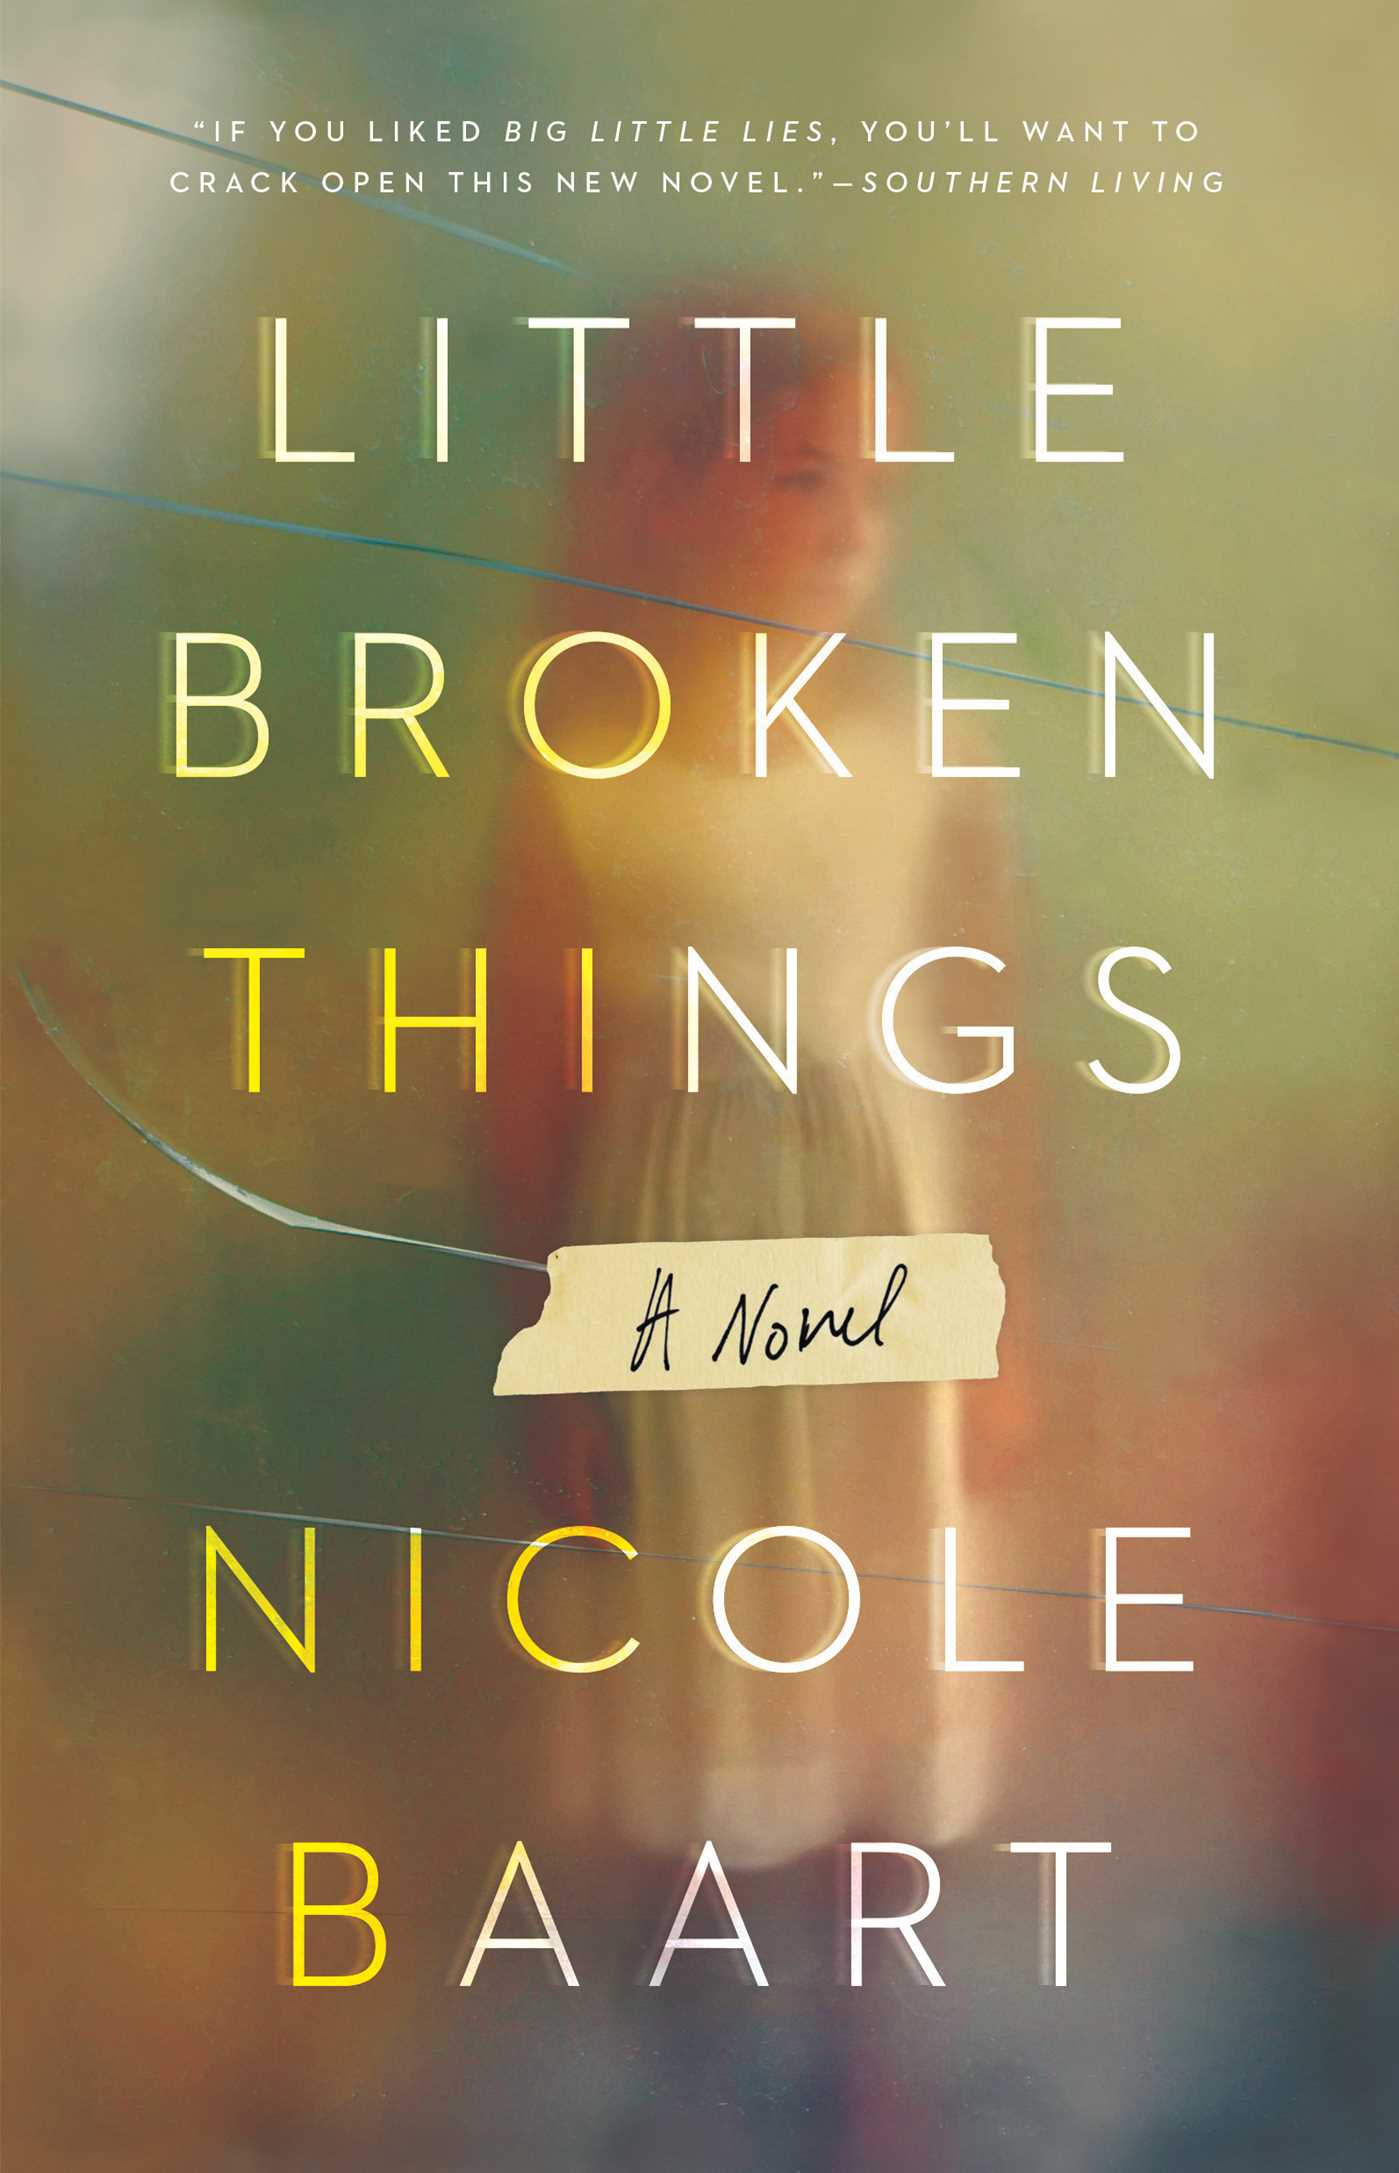 Little broken things 9781501133602 hr